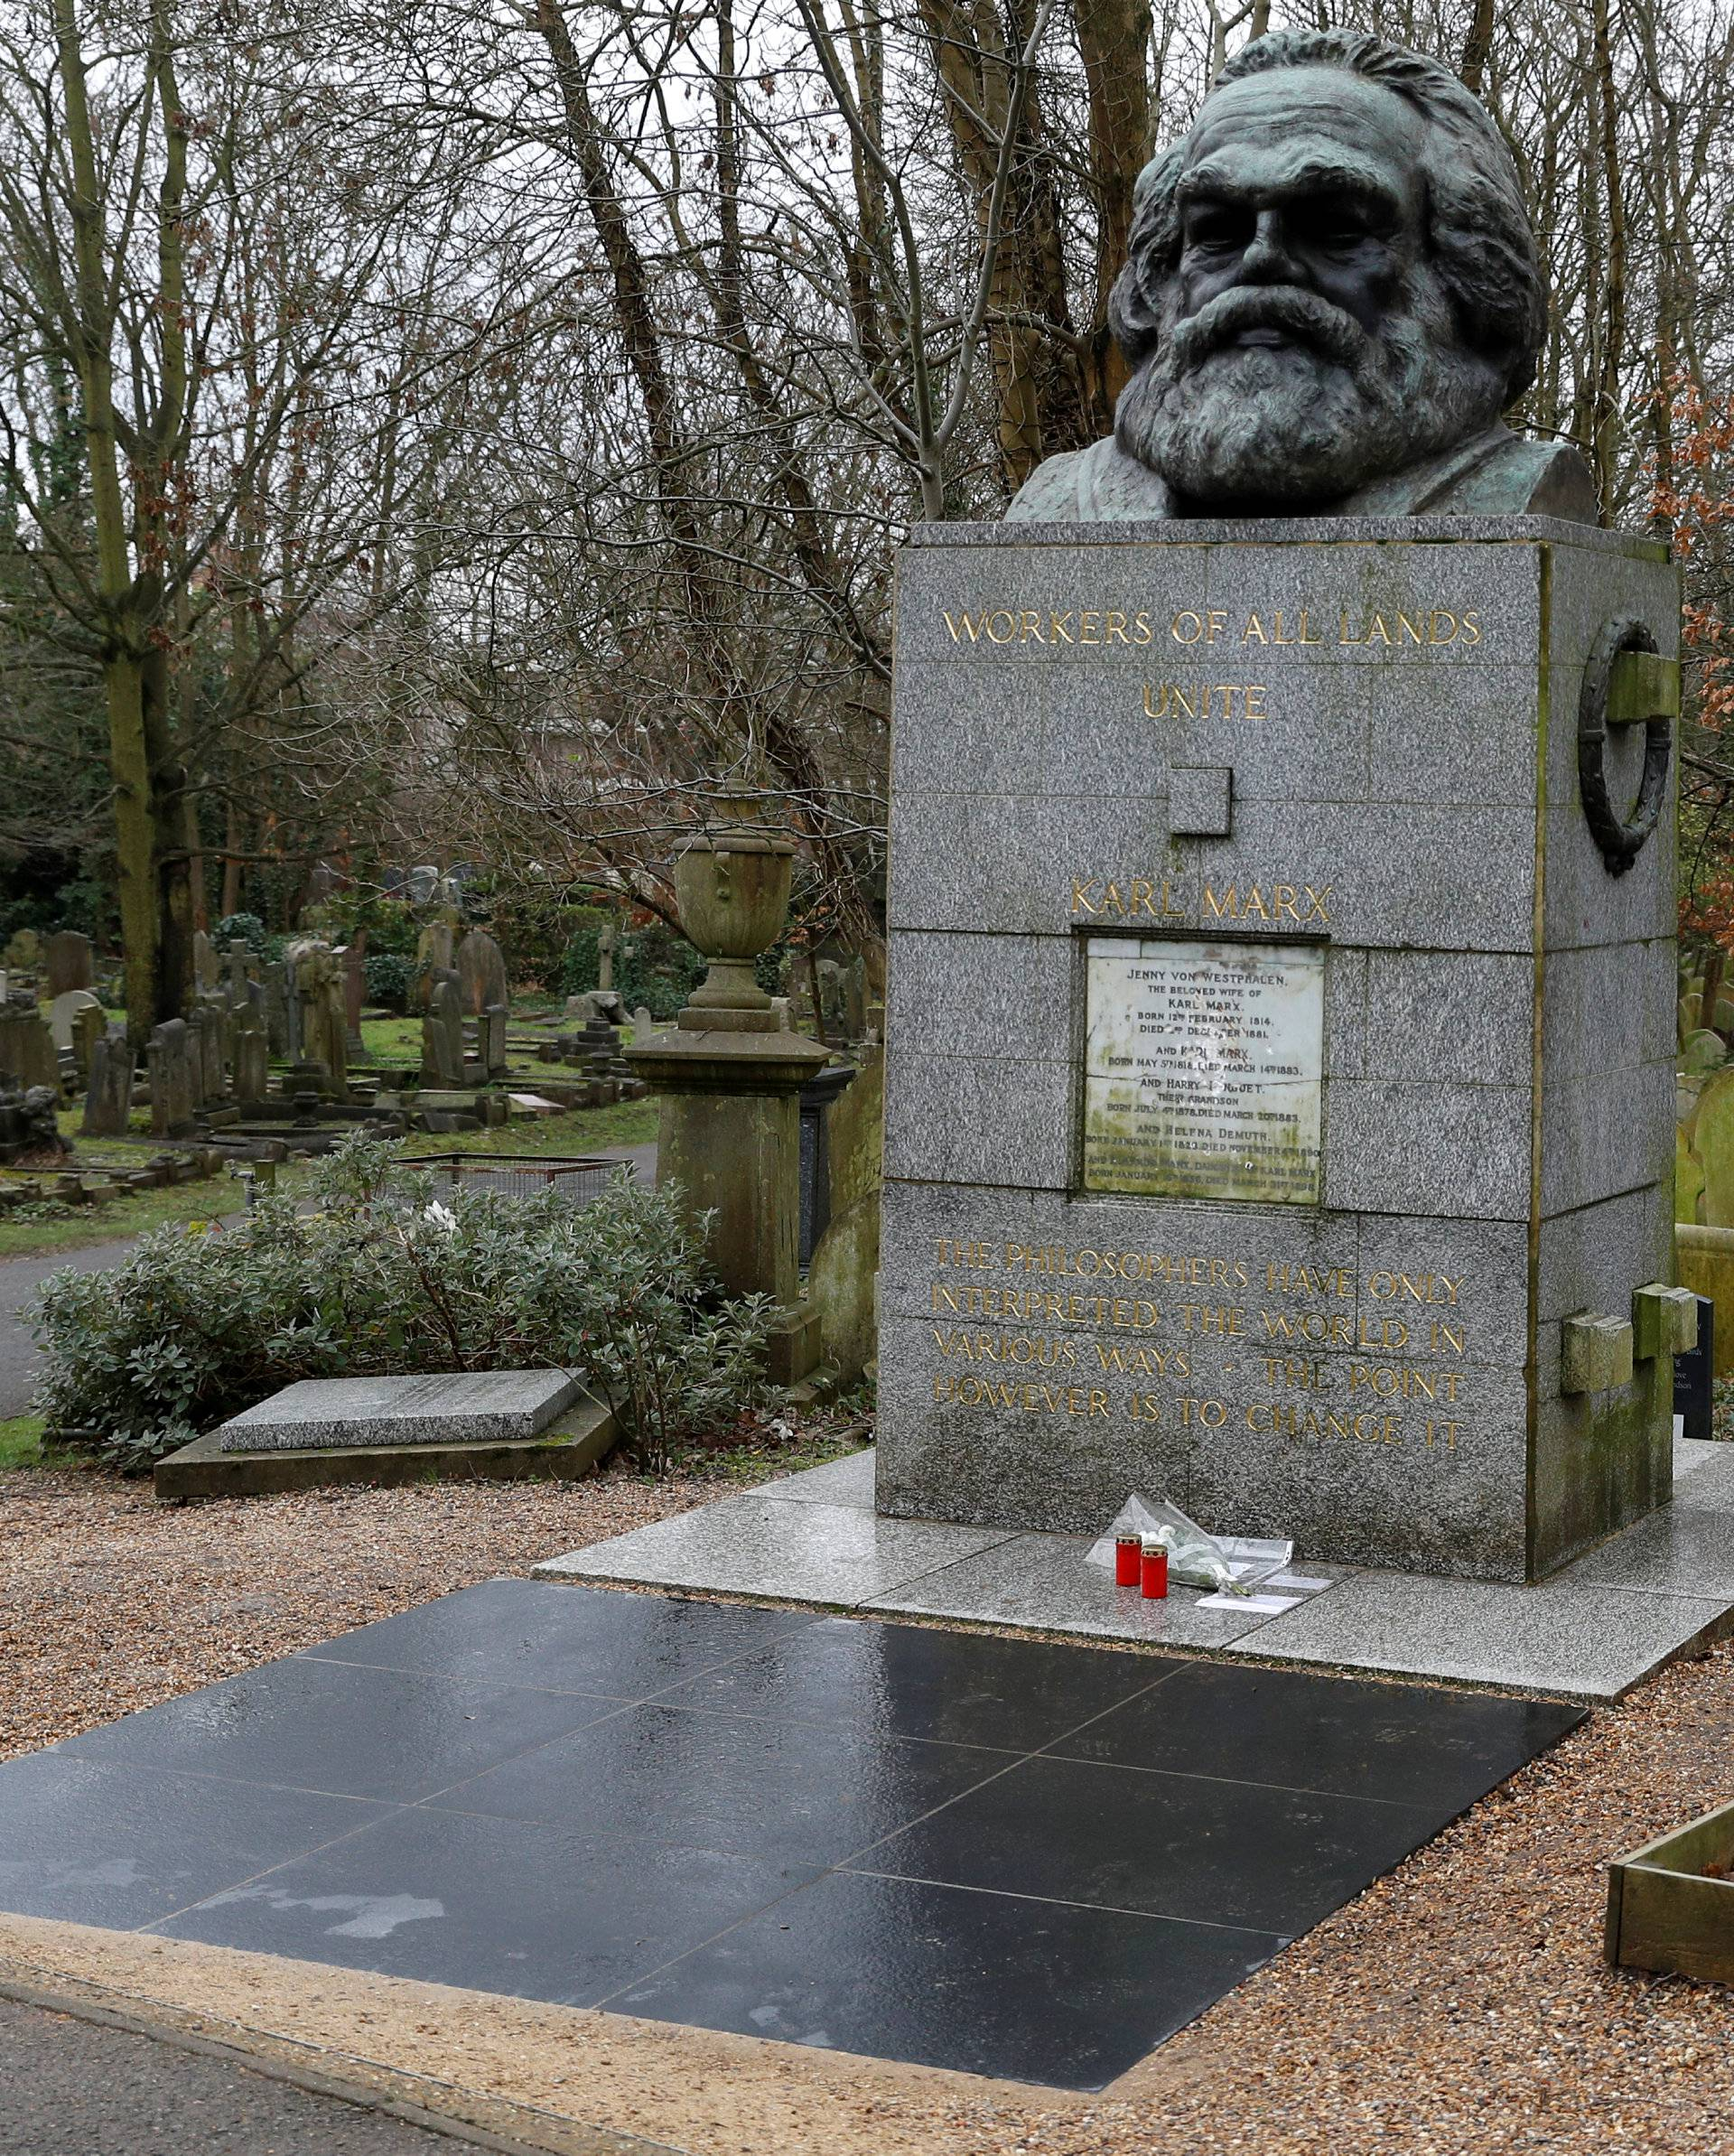 A memorial to German philosopher Karl Marx is seen after it was vandalised at Highgate Cemetery in north London